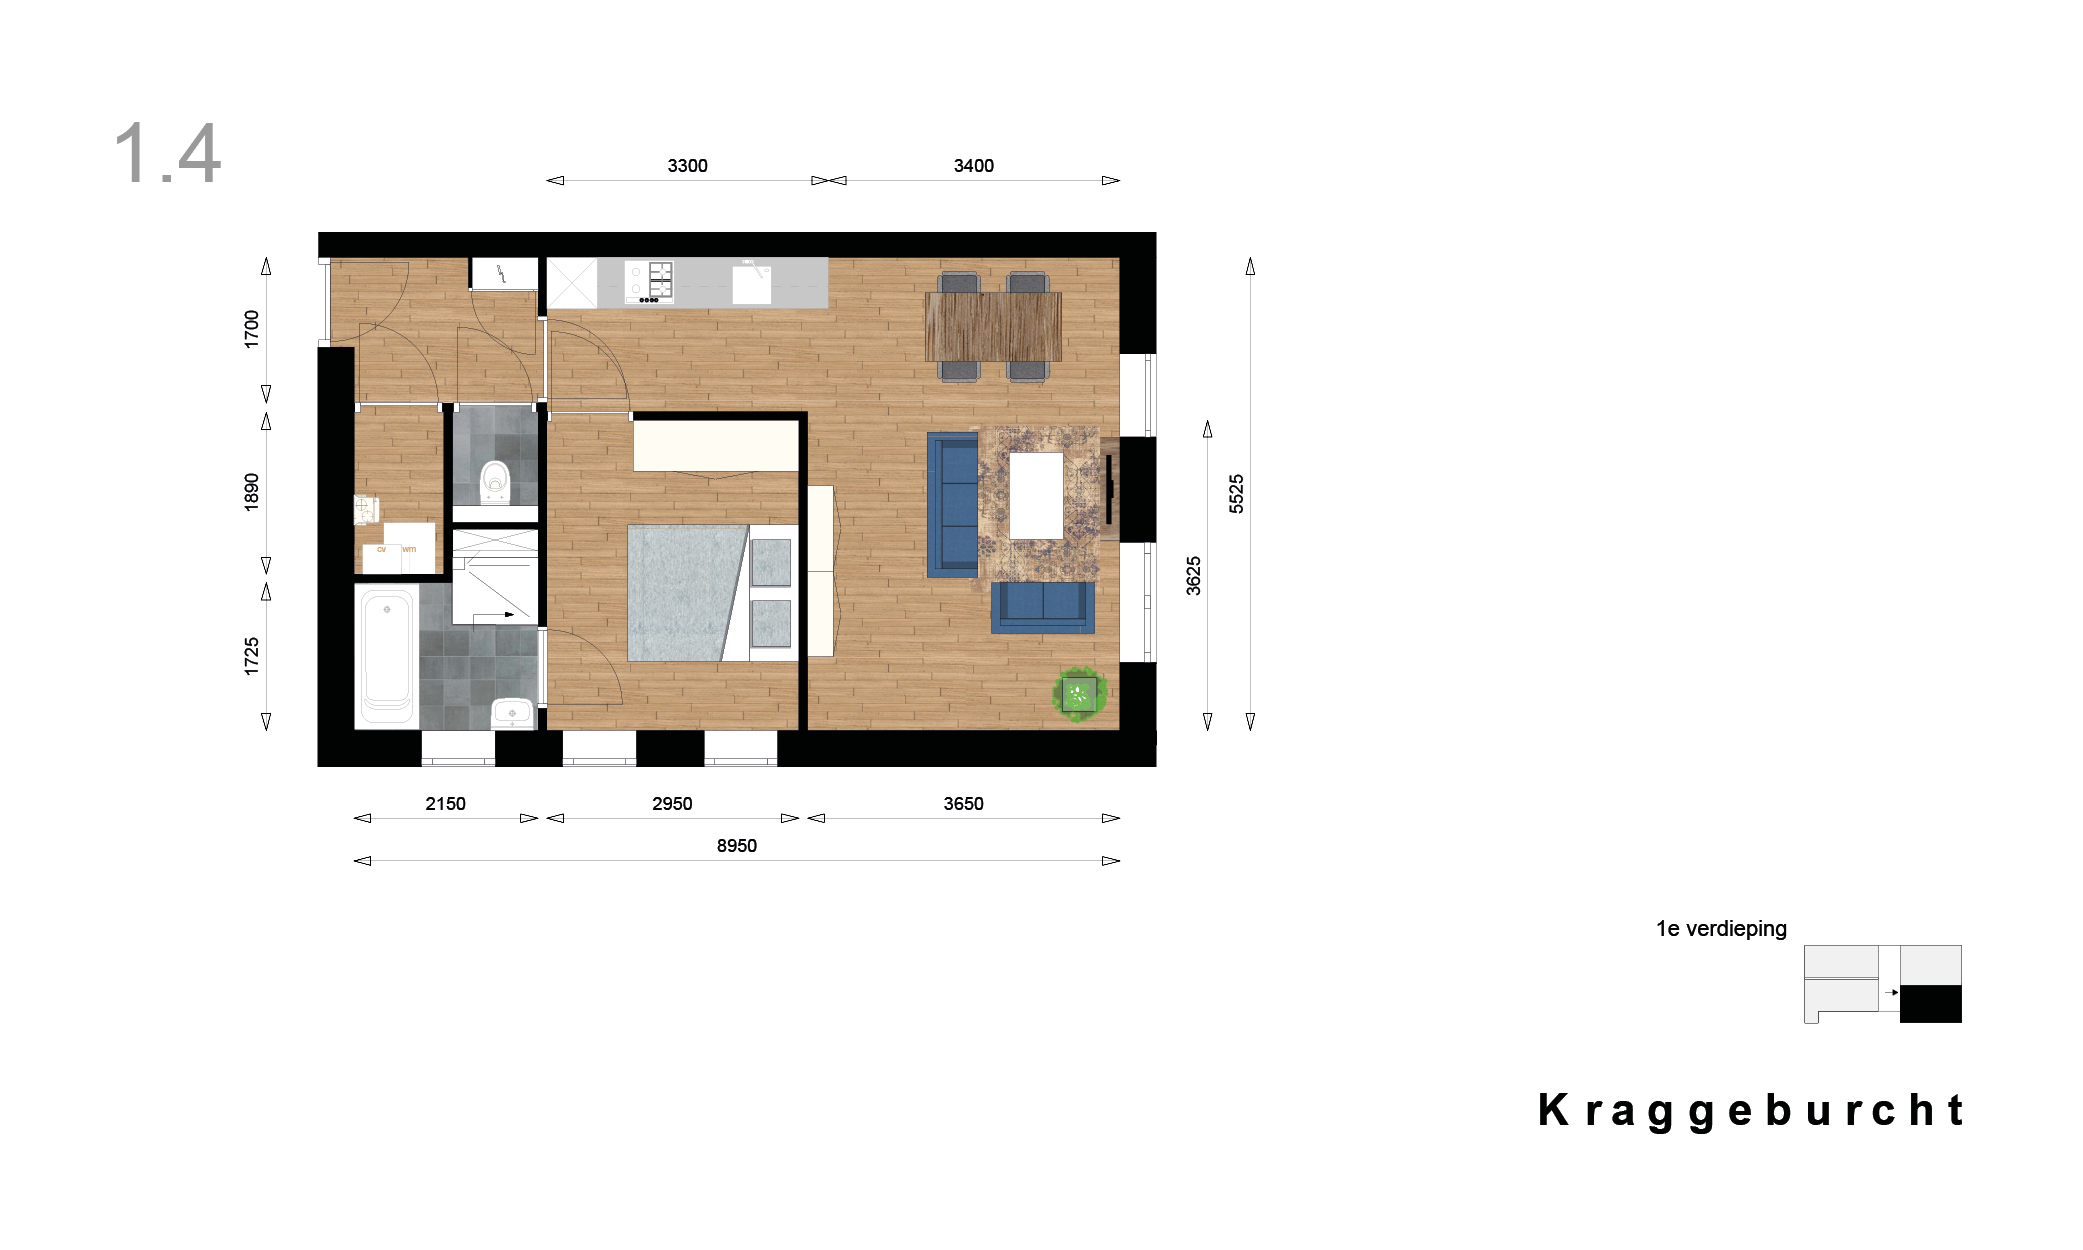 kraggeburcht-appartement-type-large8